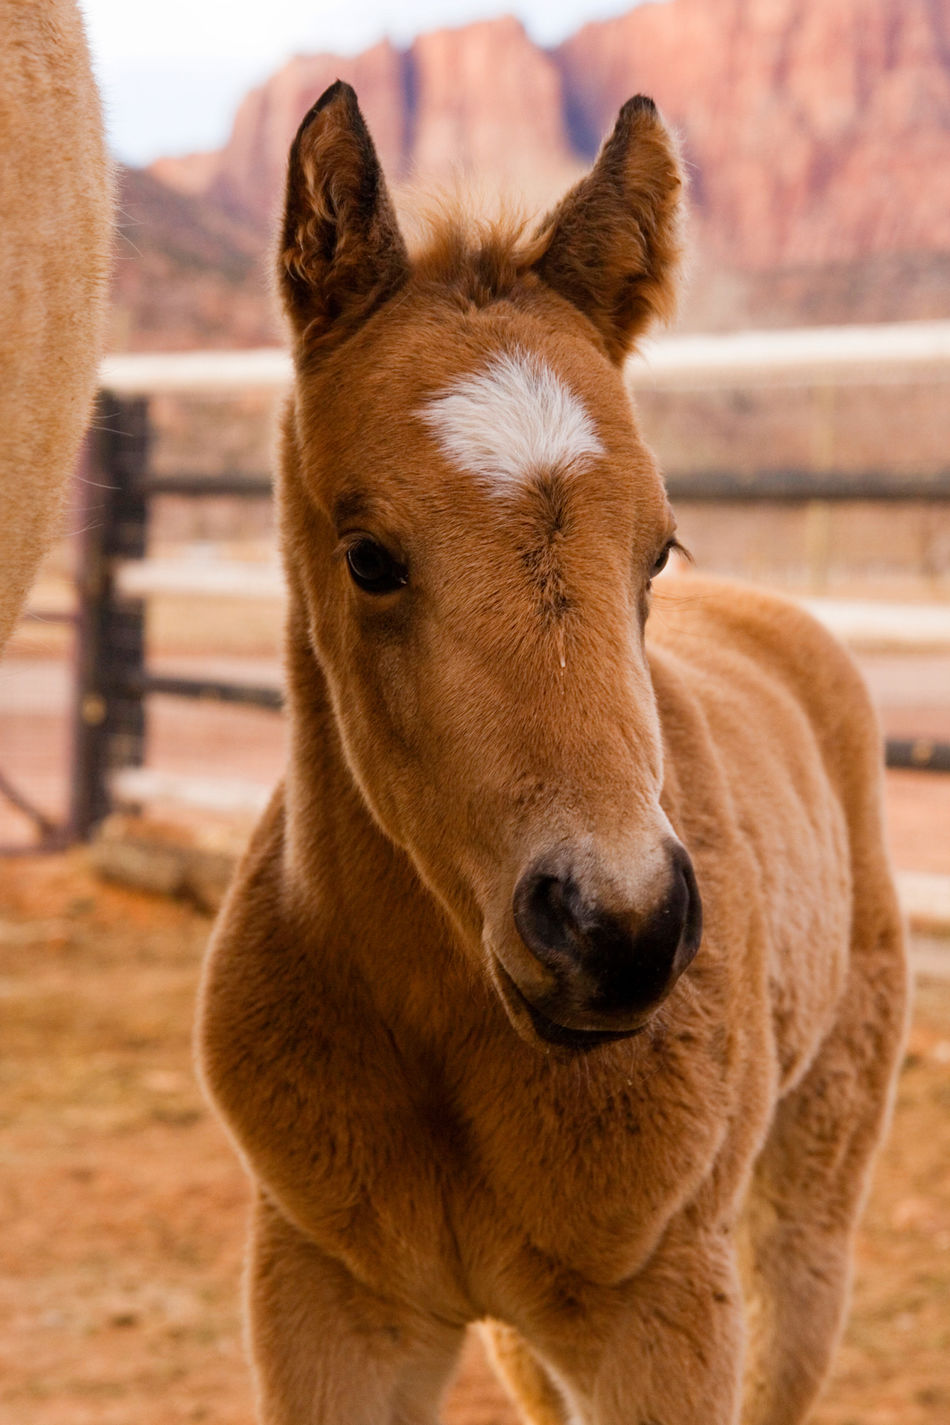 So cute baby Horse Looking At Camera Portrait Animal Themes Animal Head  Brown Horselove HorseNAround Horselovers Utah Horse Life Baby Animals Babylove Baby Horse Foal Foals